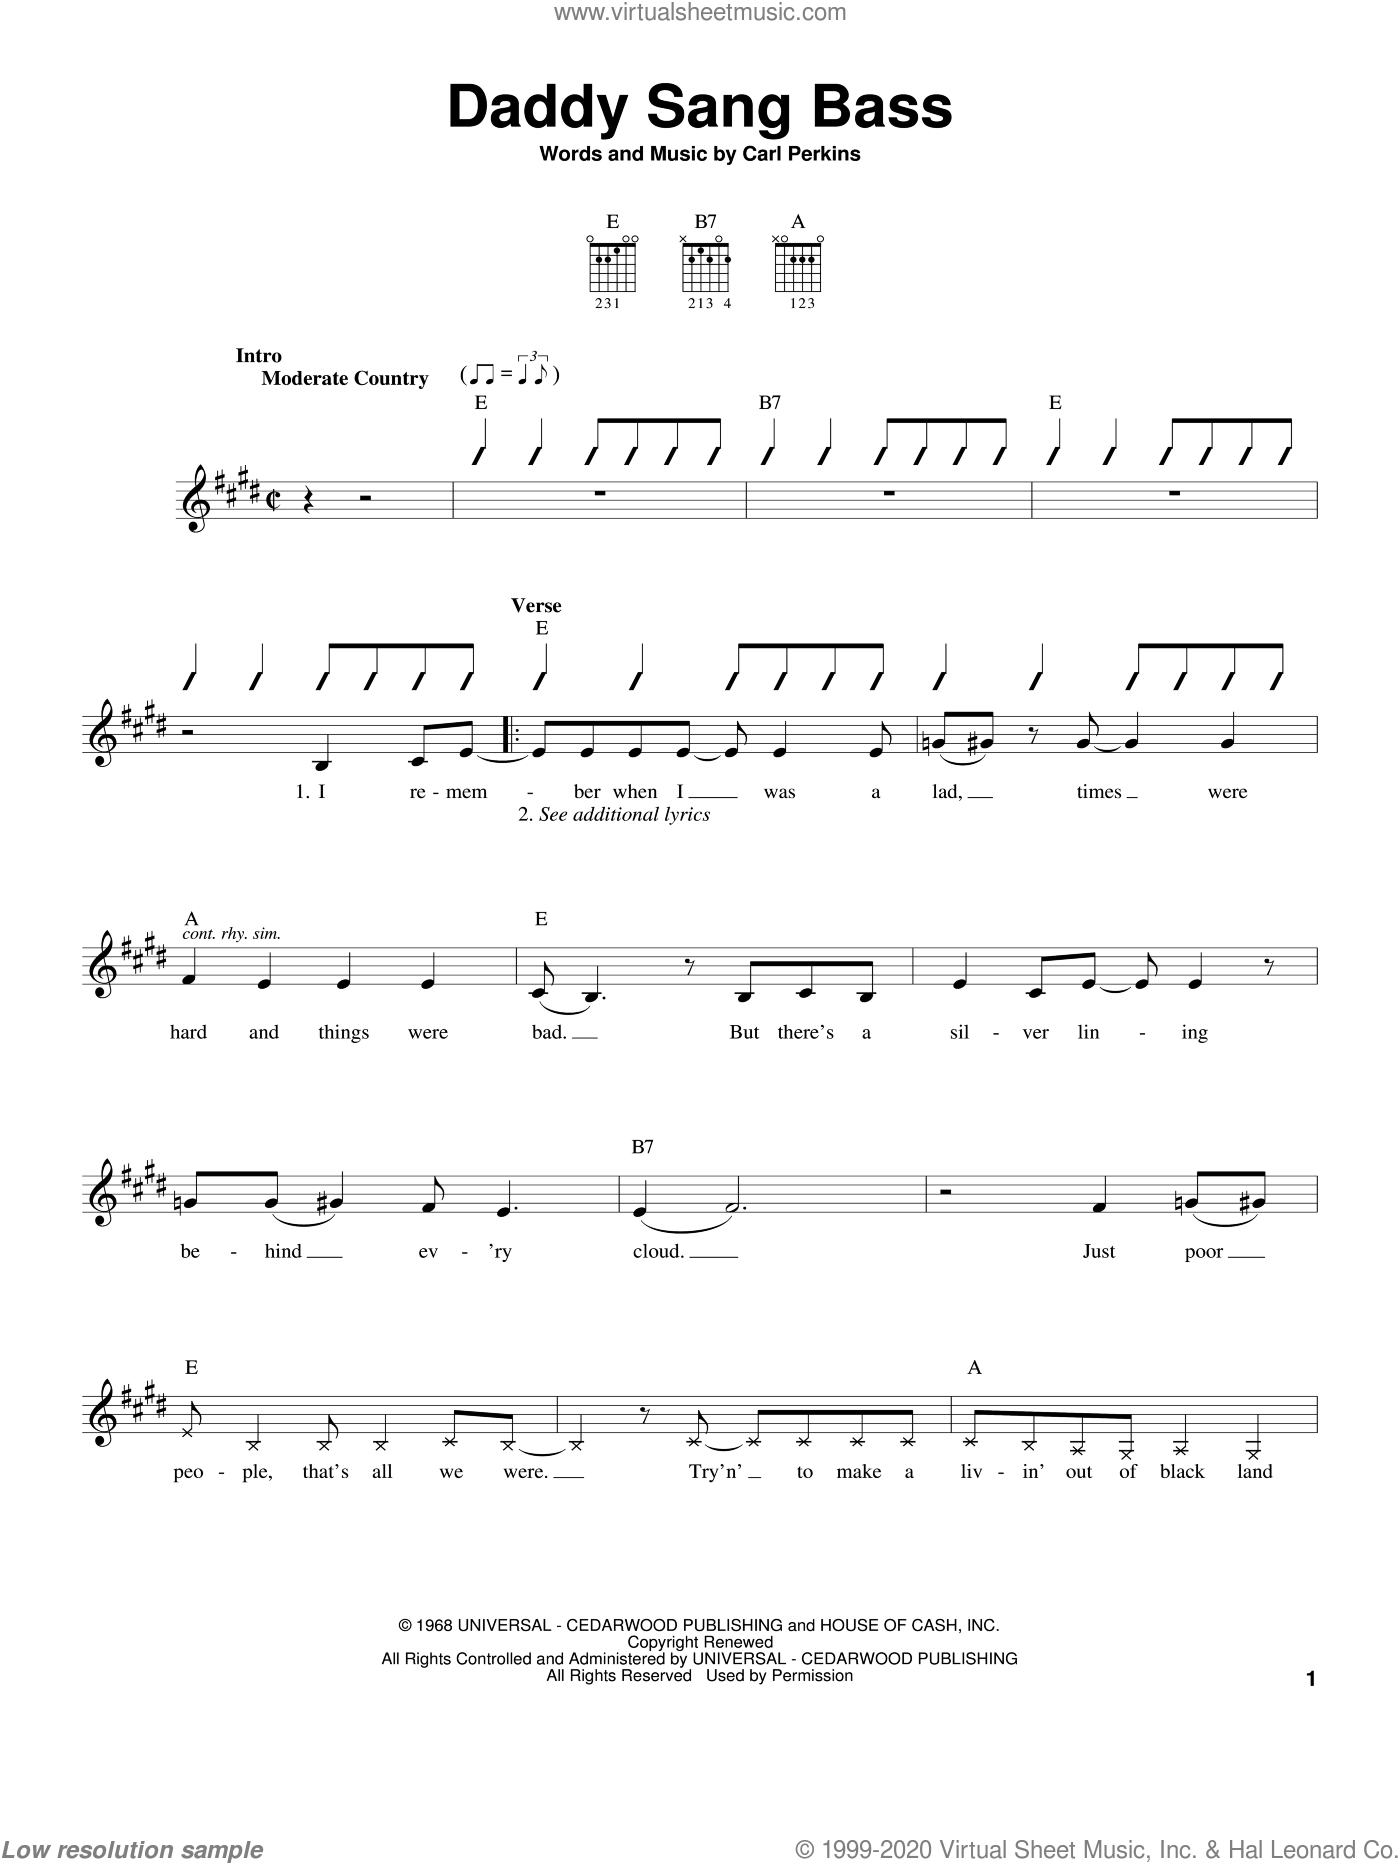 Daddy Sang Bass sheet music for guitar solo (chords) by Carl Perkins